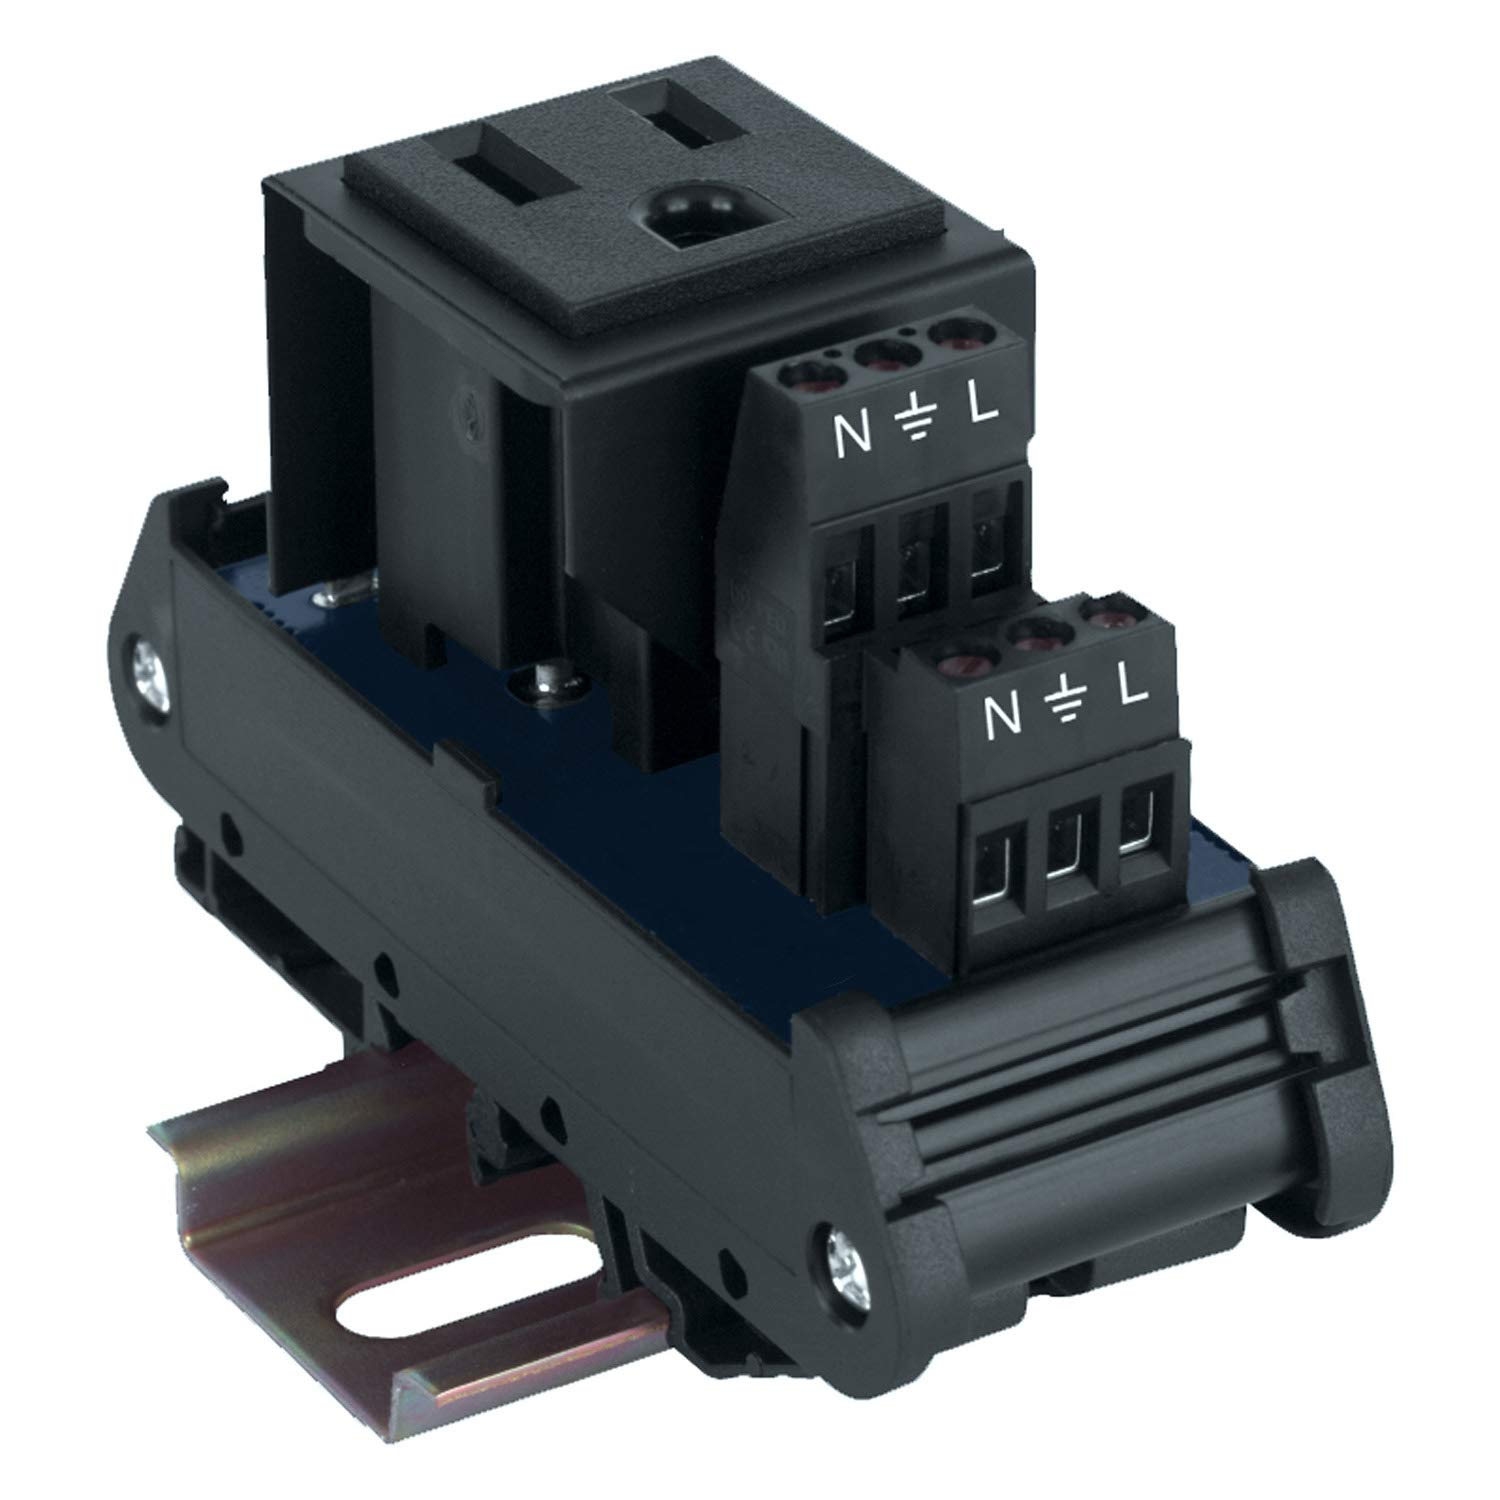 ASI San Jose Mall 35% OFF IMACP01 Single Three Prong Power AC Module Outlet Grounded